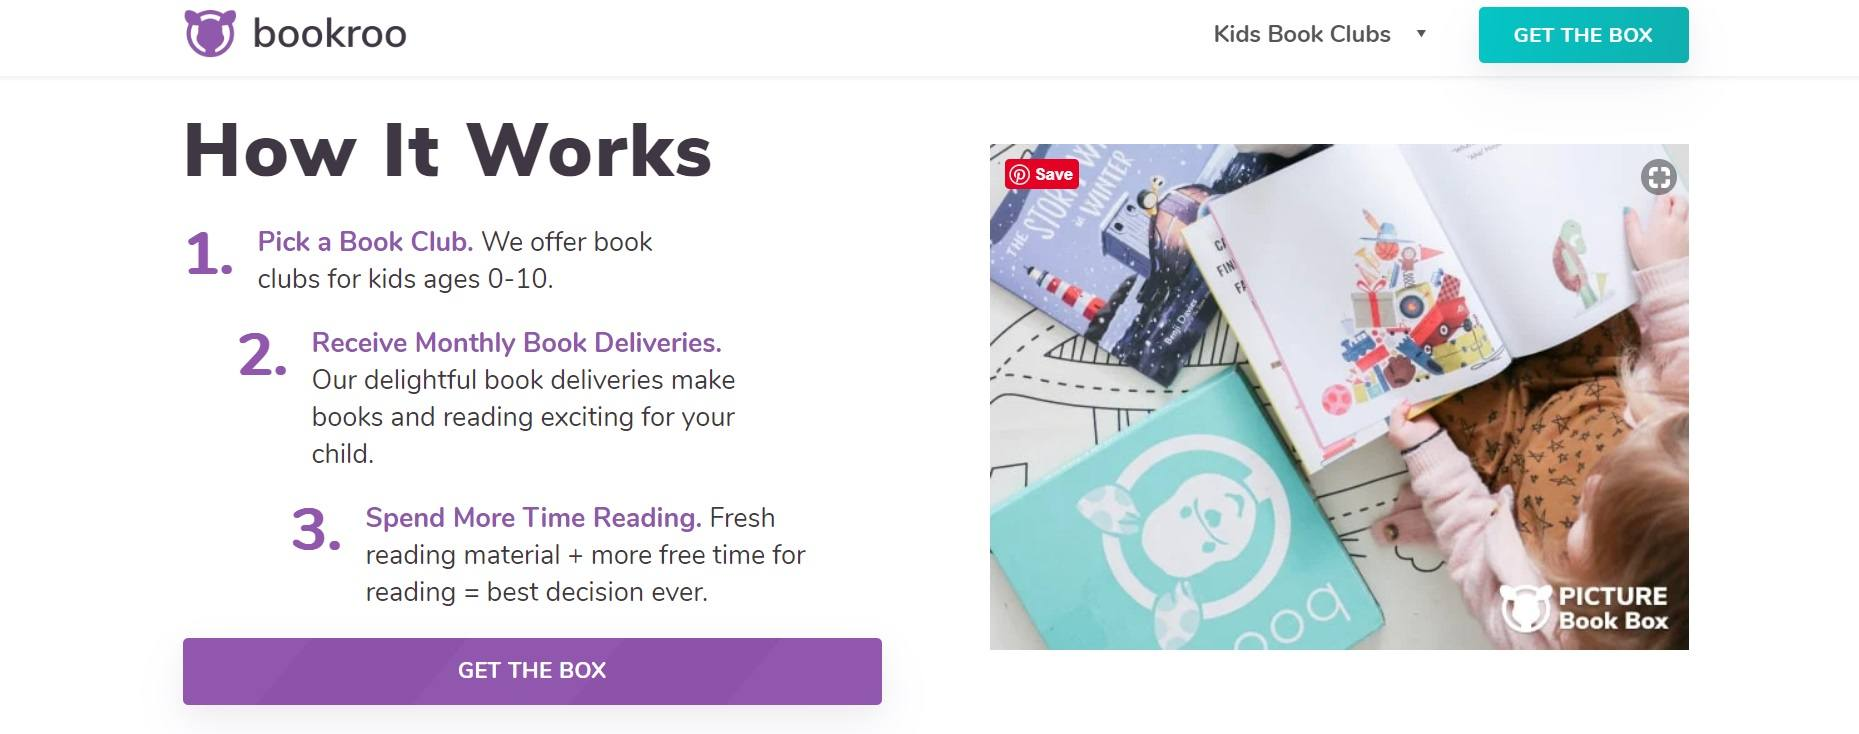 Bookroo How it Works